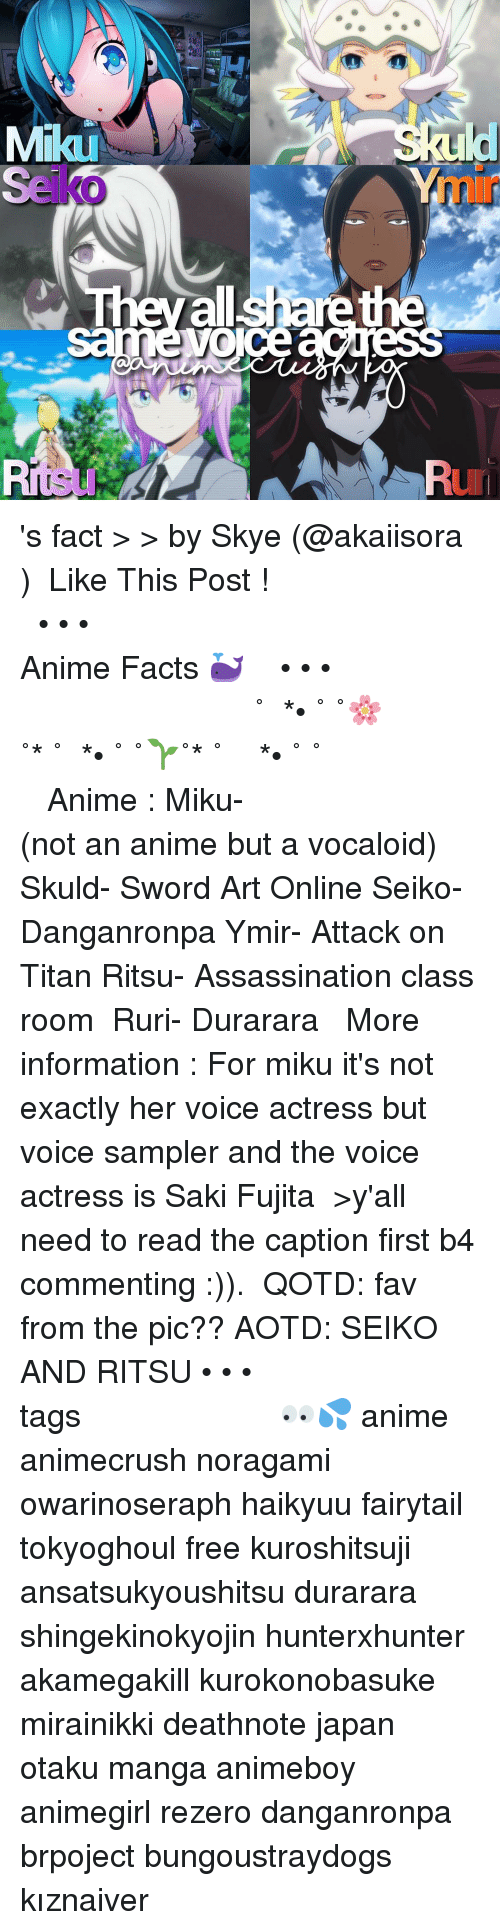 Assassination, Memes, and The Voice: Mikau  all  share the  OICe 's fact > > by Skye (@akaiisora ) ⠀ ⠀Like This Post ! ⠀ ┌──────────⠀⠀⠀⠀⠀⠀⠀⠀ ❀ • • • ⠀ ⠀ ⠀⠀⠀⠀⠀⠀⠀ ⠀‣ ‣ ❝ Anime Facts 🐳 ❞ ⠀ ⠀ ⠀⠀⠀⠀⠀⠀⠀• • • ❀⠀⠀⠀⠀⠀⠀ ⠀────────────┘ ⠀ ୨˚̣̣̣͙୧⋆*•̩̩͙৩˚༚ཻ˚̩̩͙🌸˚̩̩͙*⋆˚♛⋆*•̩̩͙࿔࿆˚༚ཻ˚̩̩͙🌱˚̩̩͙*⋆˚♛➹♛⋆*•̩̩͙৩˚༚ཻ˚̩̩͙ ⠀⠀✧࿐ ⠀┈┈┈┈┈┈┈┈┈┈┈┈┈┈┈┈┈┈⇢ ⠀⠀⠀ ⠀⇢ Anime : Miku- (not an anime but a vocaloid) Skuld- Sword Art Online Seiko- Danganronpa Ymir- Attack on Titan Ritsu- Assassination class room ⠀ Ruri- Durarara ⠀ ⠀⇢ More information : For miku it's not exactly her voice actress but voice sampler and the voice actress is Saki Fujita ⠀ >y'all need to read the caption first b4 commenting :)). ⠀ ⠀❥『QOTD』: fav from the pic?? ⠀❥『AOTD』: SEIKO AND RITSU • • • ┈┈┈┈┈┈┈┈┈┈┈┈┈┈┈┈┈┈┈┈⇢tags 👀💦 anime animecrush noragami owarinoseraph haikyuu fairytail tokyoghoul free kuroshitsuji ansatsukyoushitsu durarara shingekinokyojin hunterxhunter akamegakill kurokonobasuke mirainikki deathnote japan otaku manga animeboy animegirl rezero danganronpa brpoject bungoustraydogs kıznaiver